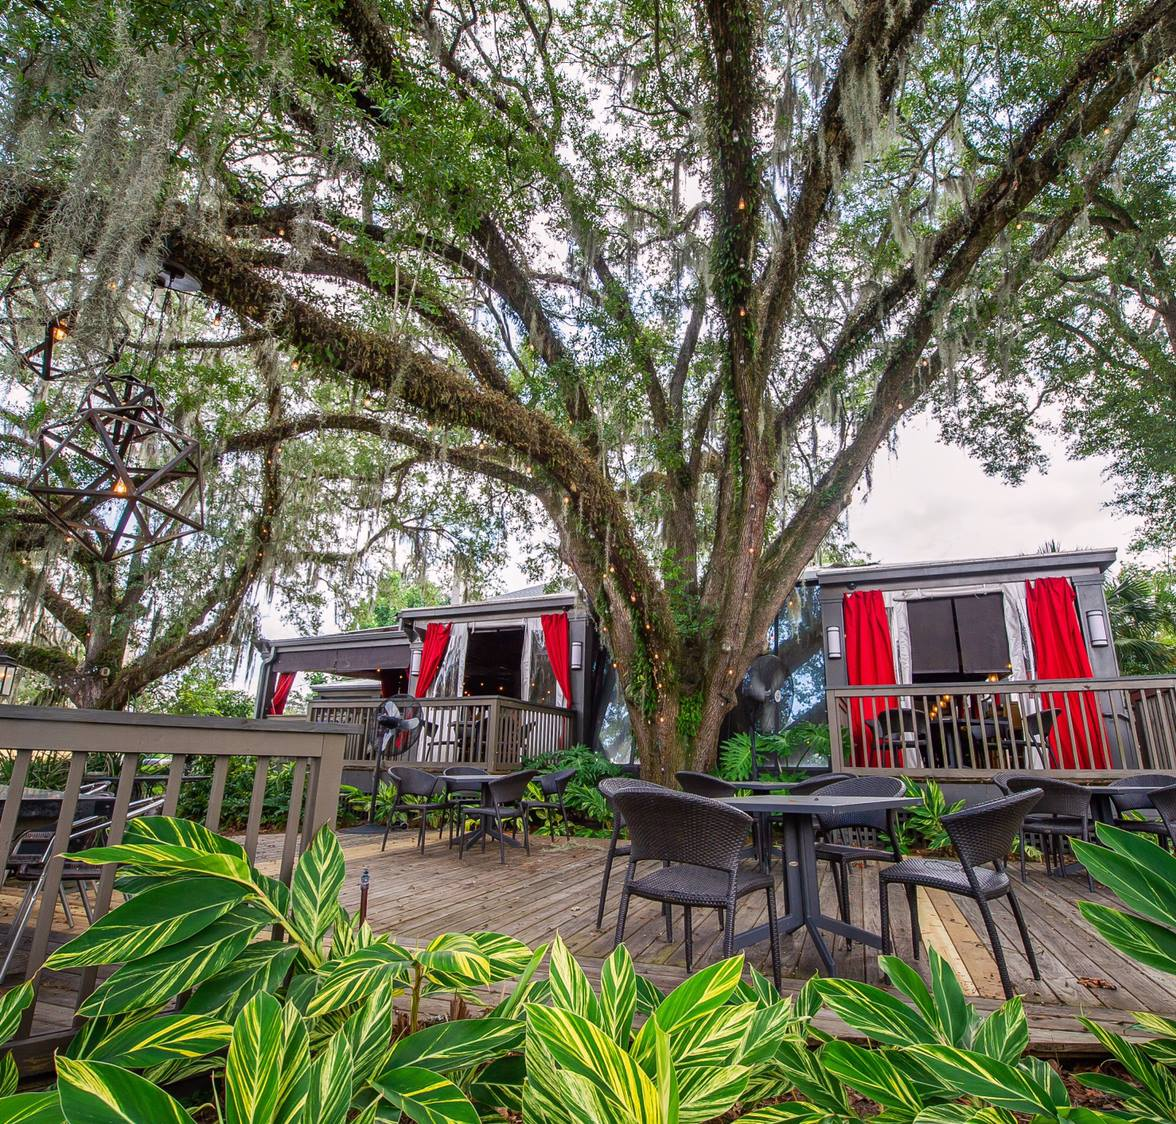 Restaurants Open On Christmas Day 2020 Tallahassee Tallahassee restaurant guide to dining outdoors, indoors, takeout